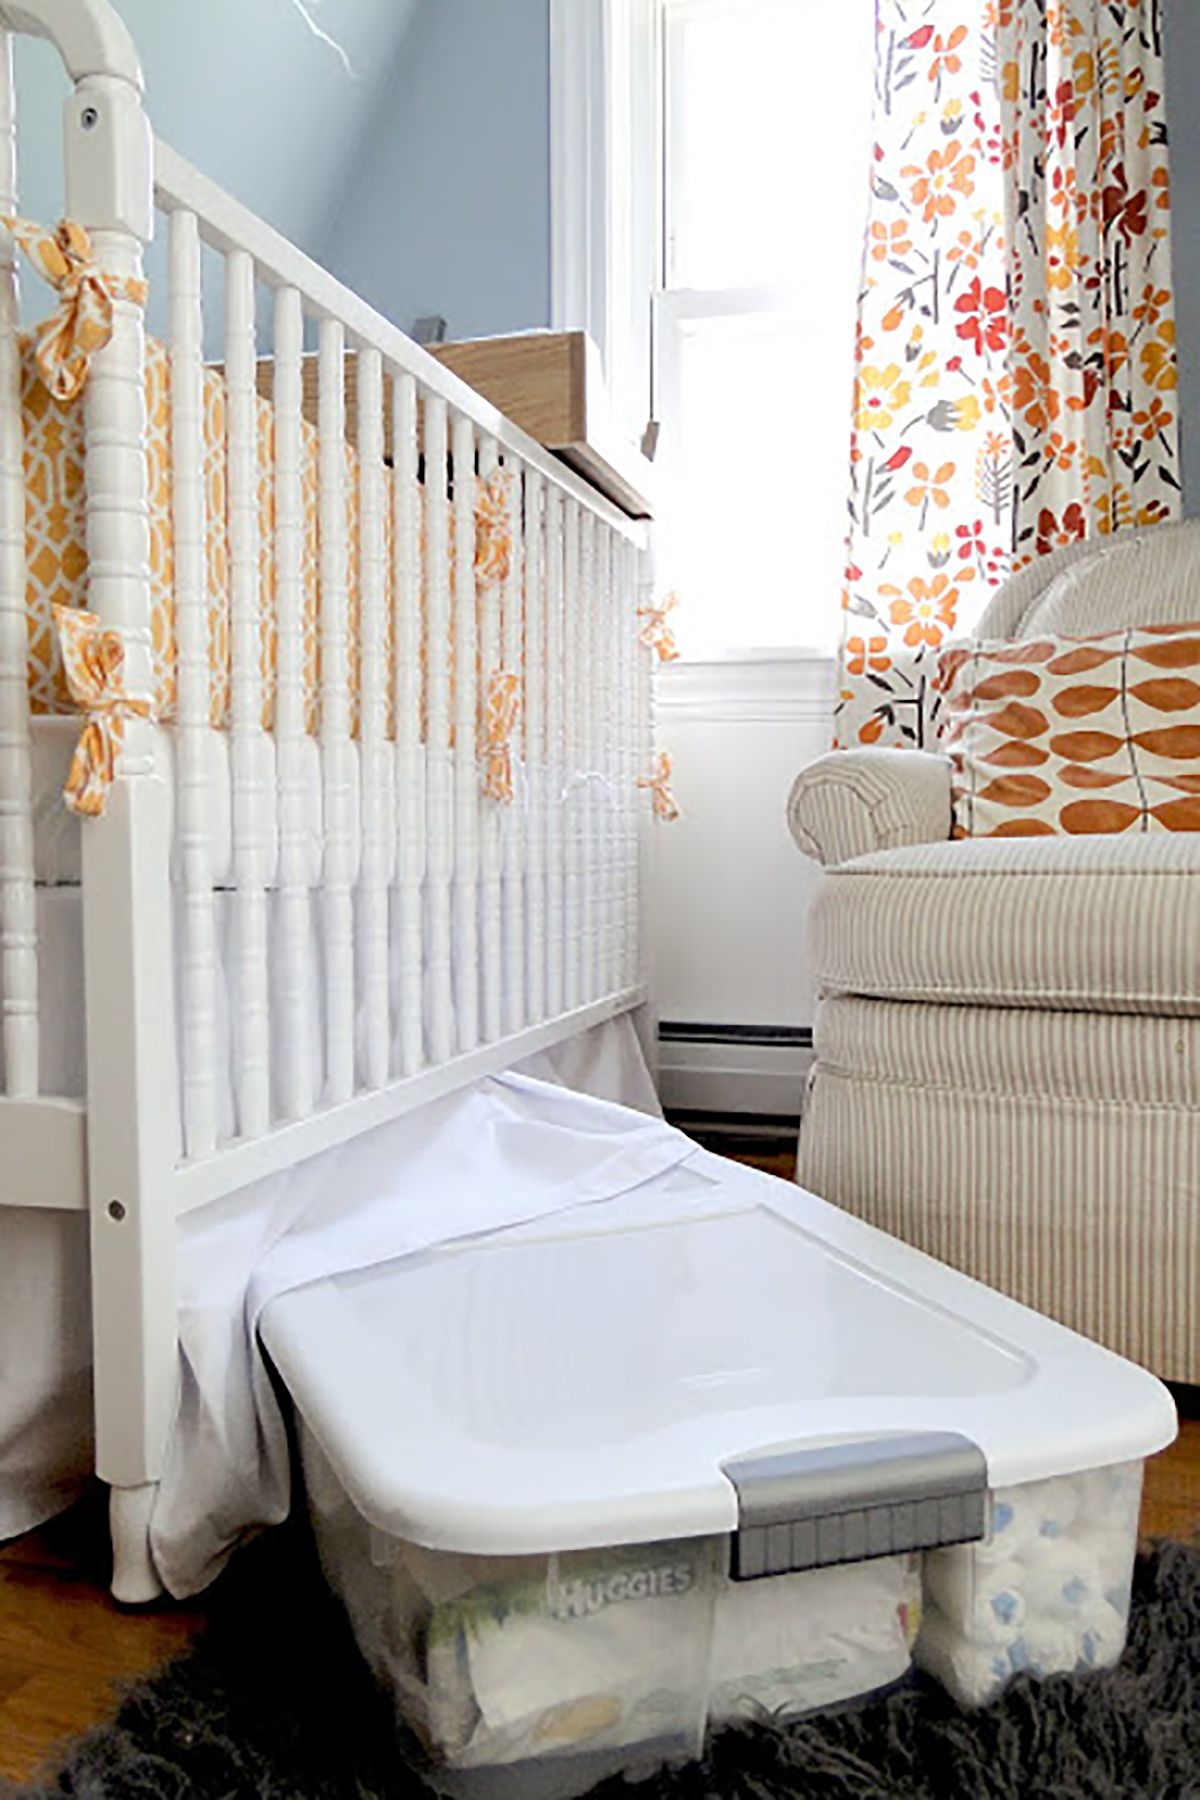 20 Best Baby Room Ideas Nursery Design Organization And Storage Tips